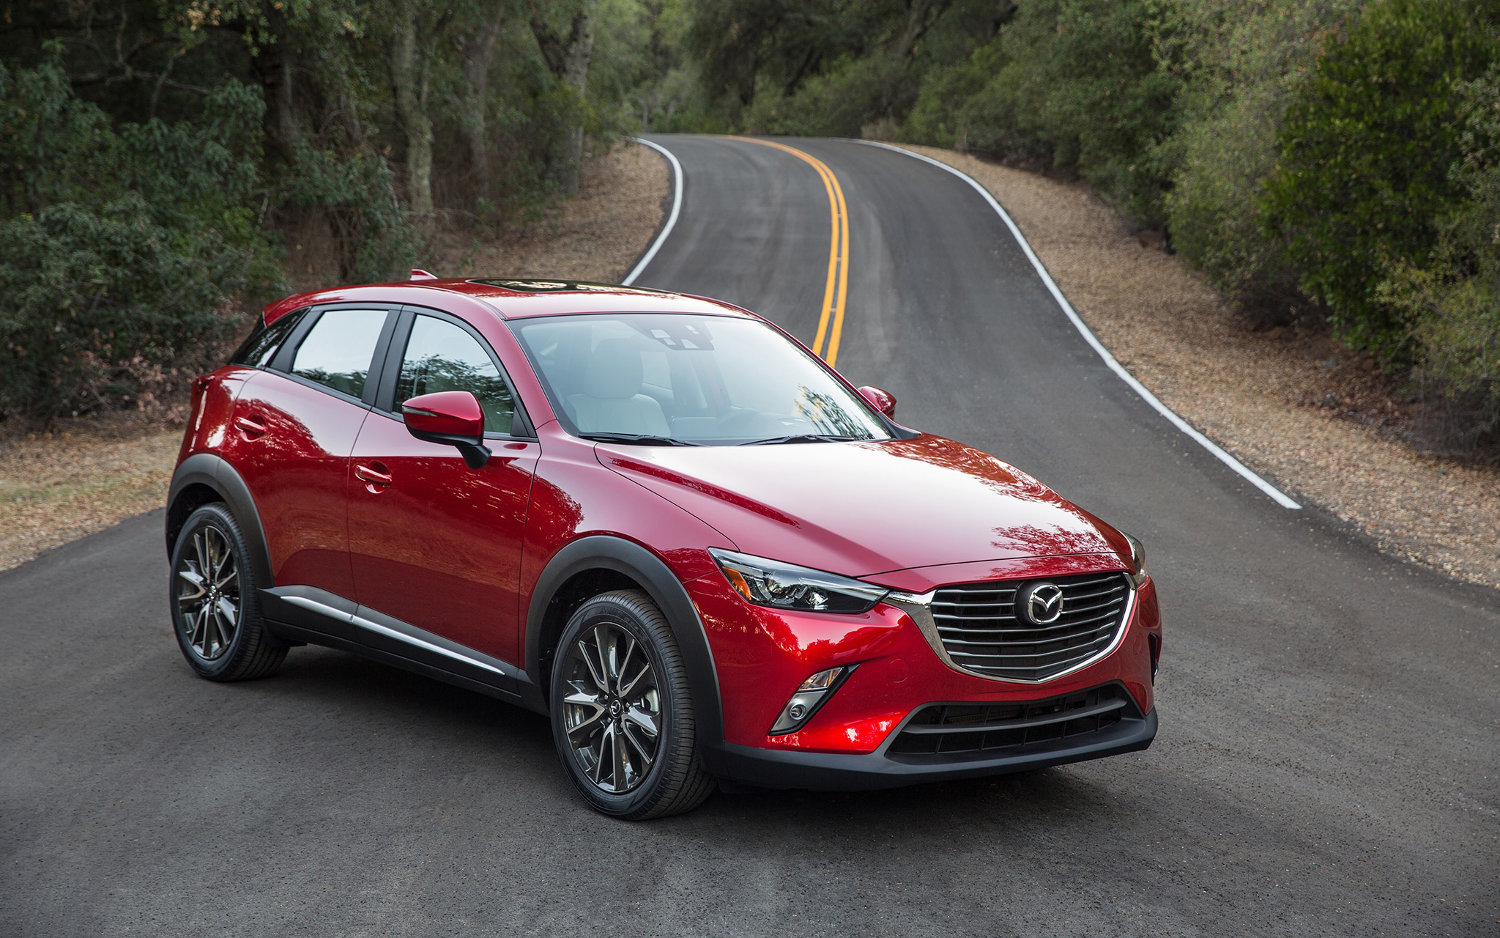 2017 mazda cx 3 grand touring review australia cars for you - 1